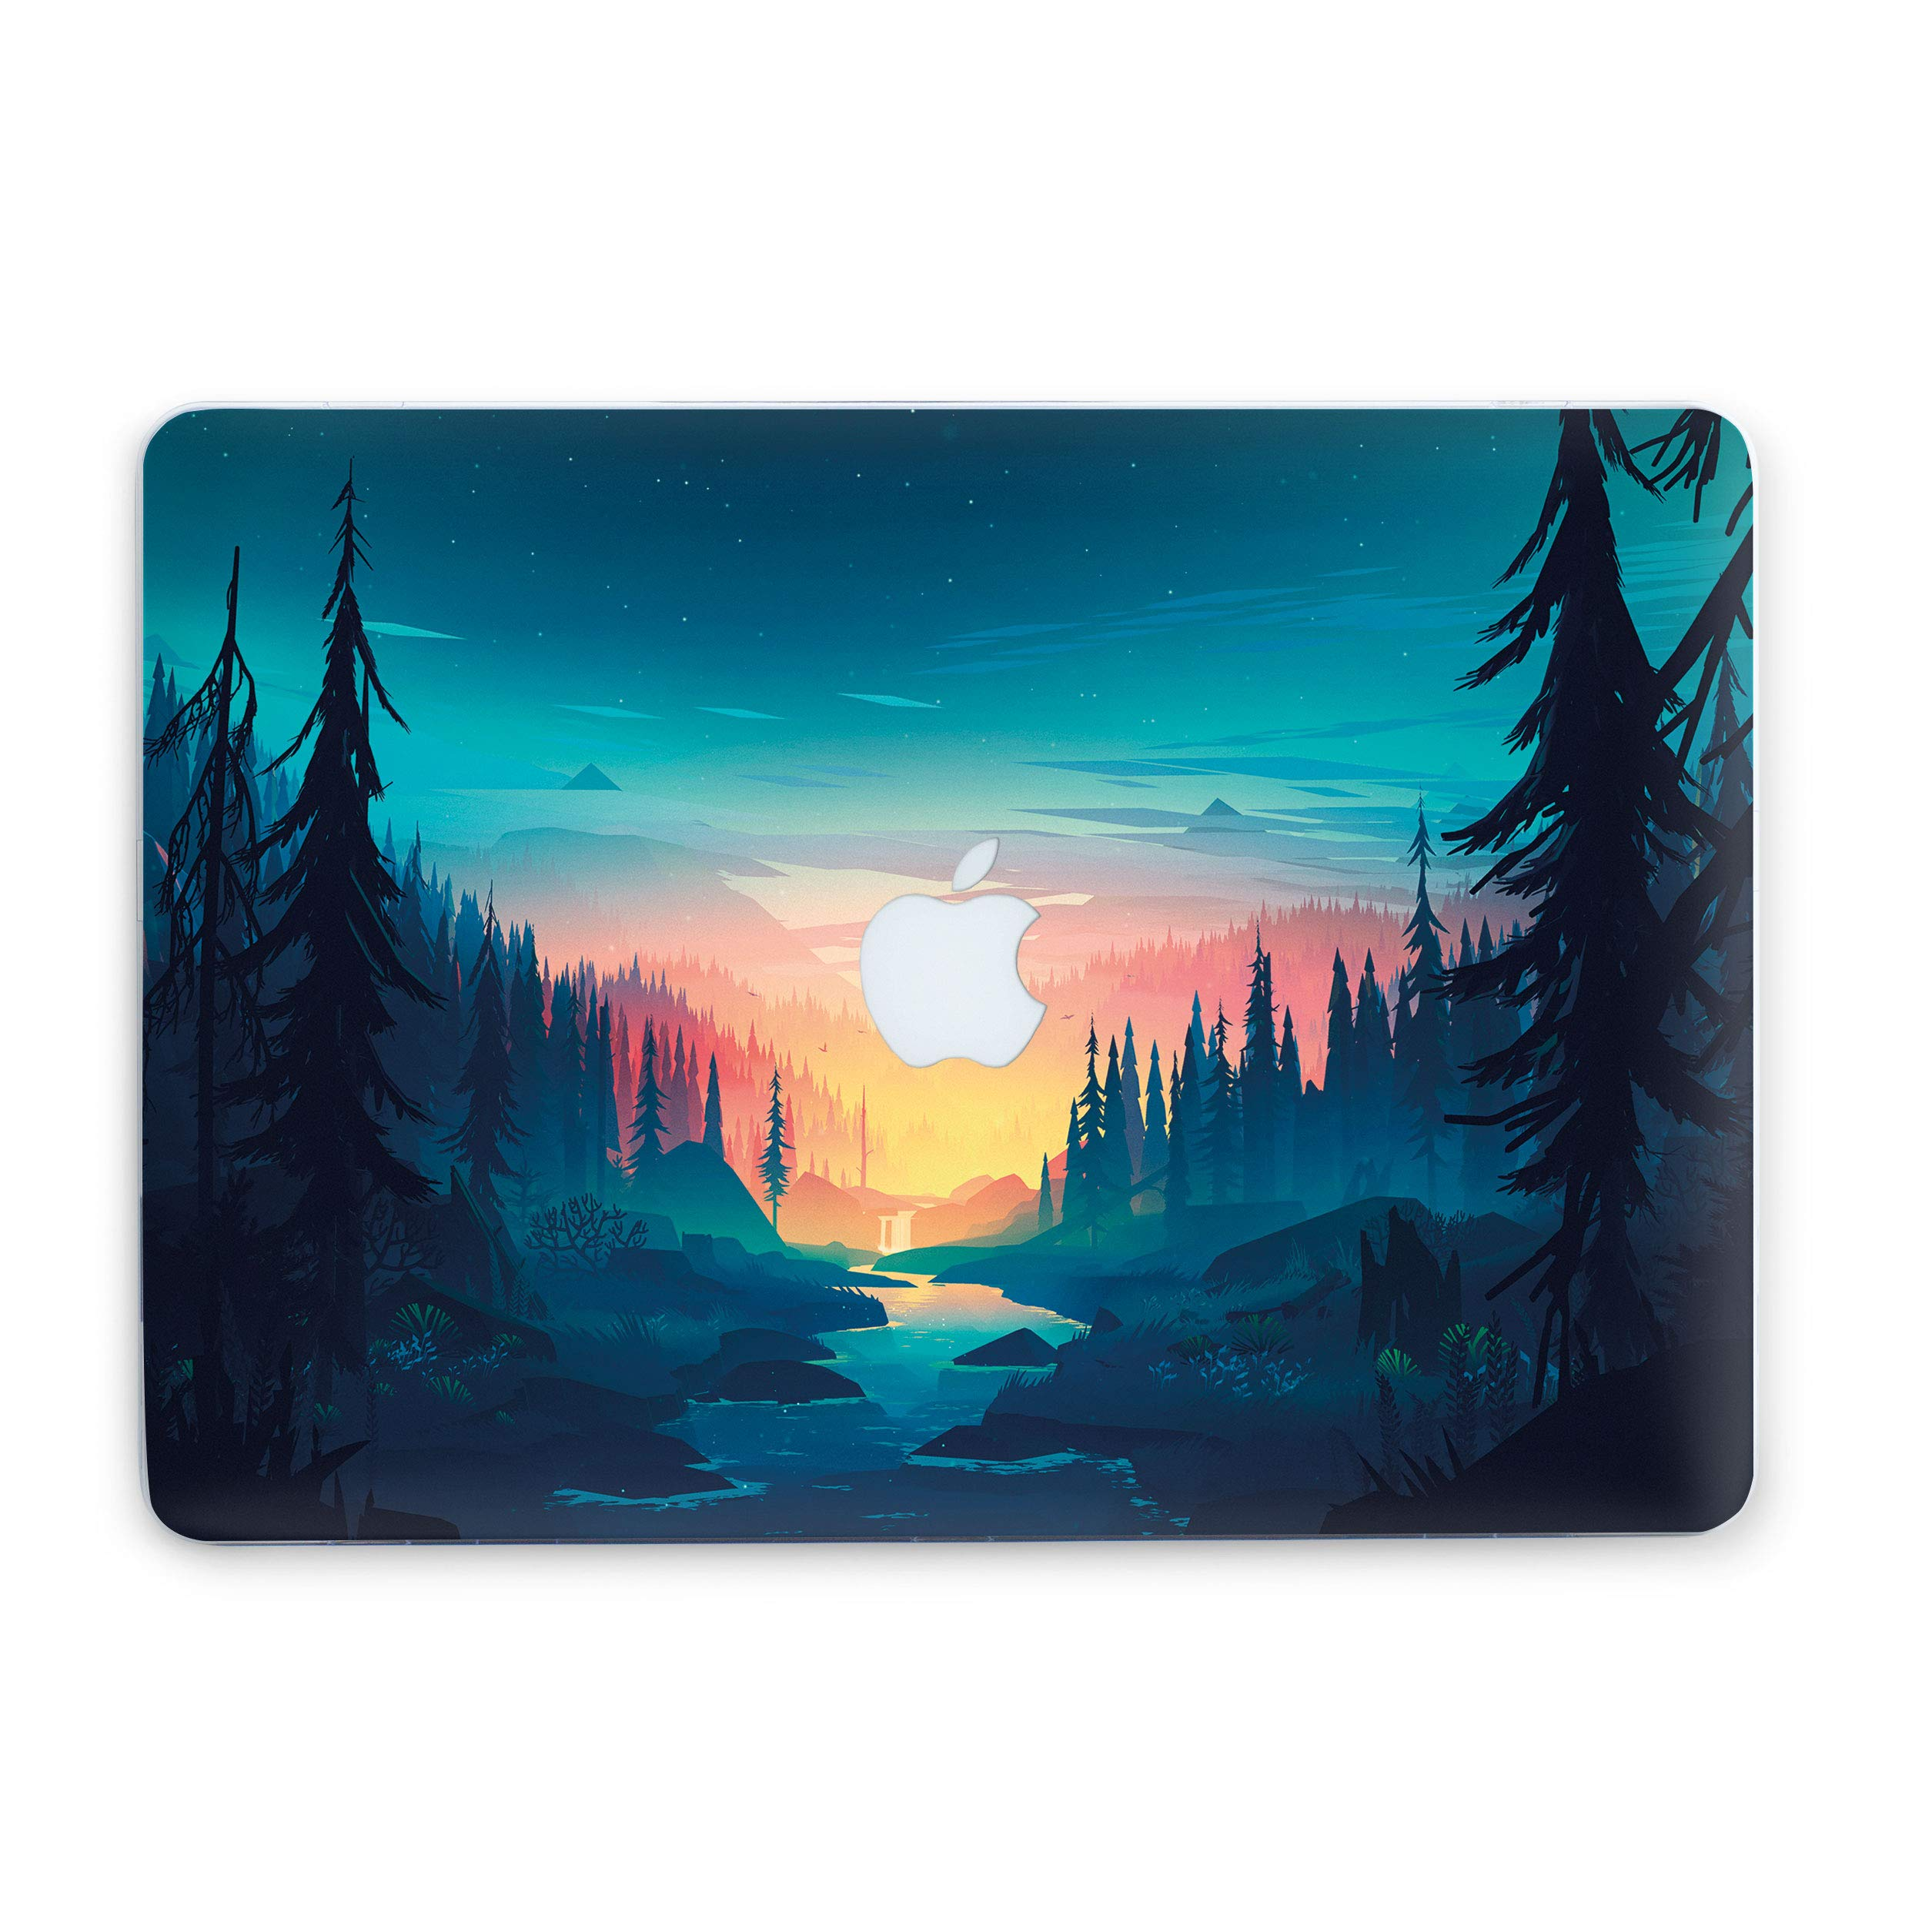 MacBook Case Nature Inspired View Landscape Protective Durable Cover for Laptop Hard Case with Printed Bottom (Air 13 (A1369 & A1466), Morning Forest)